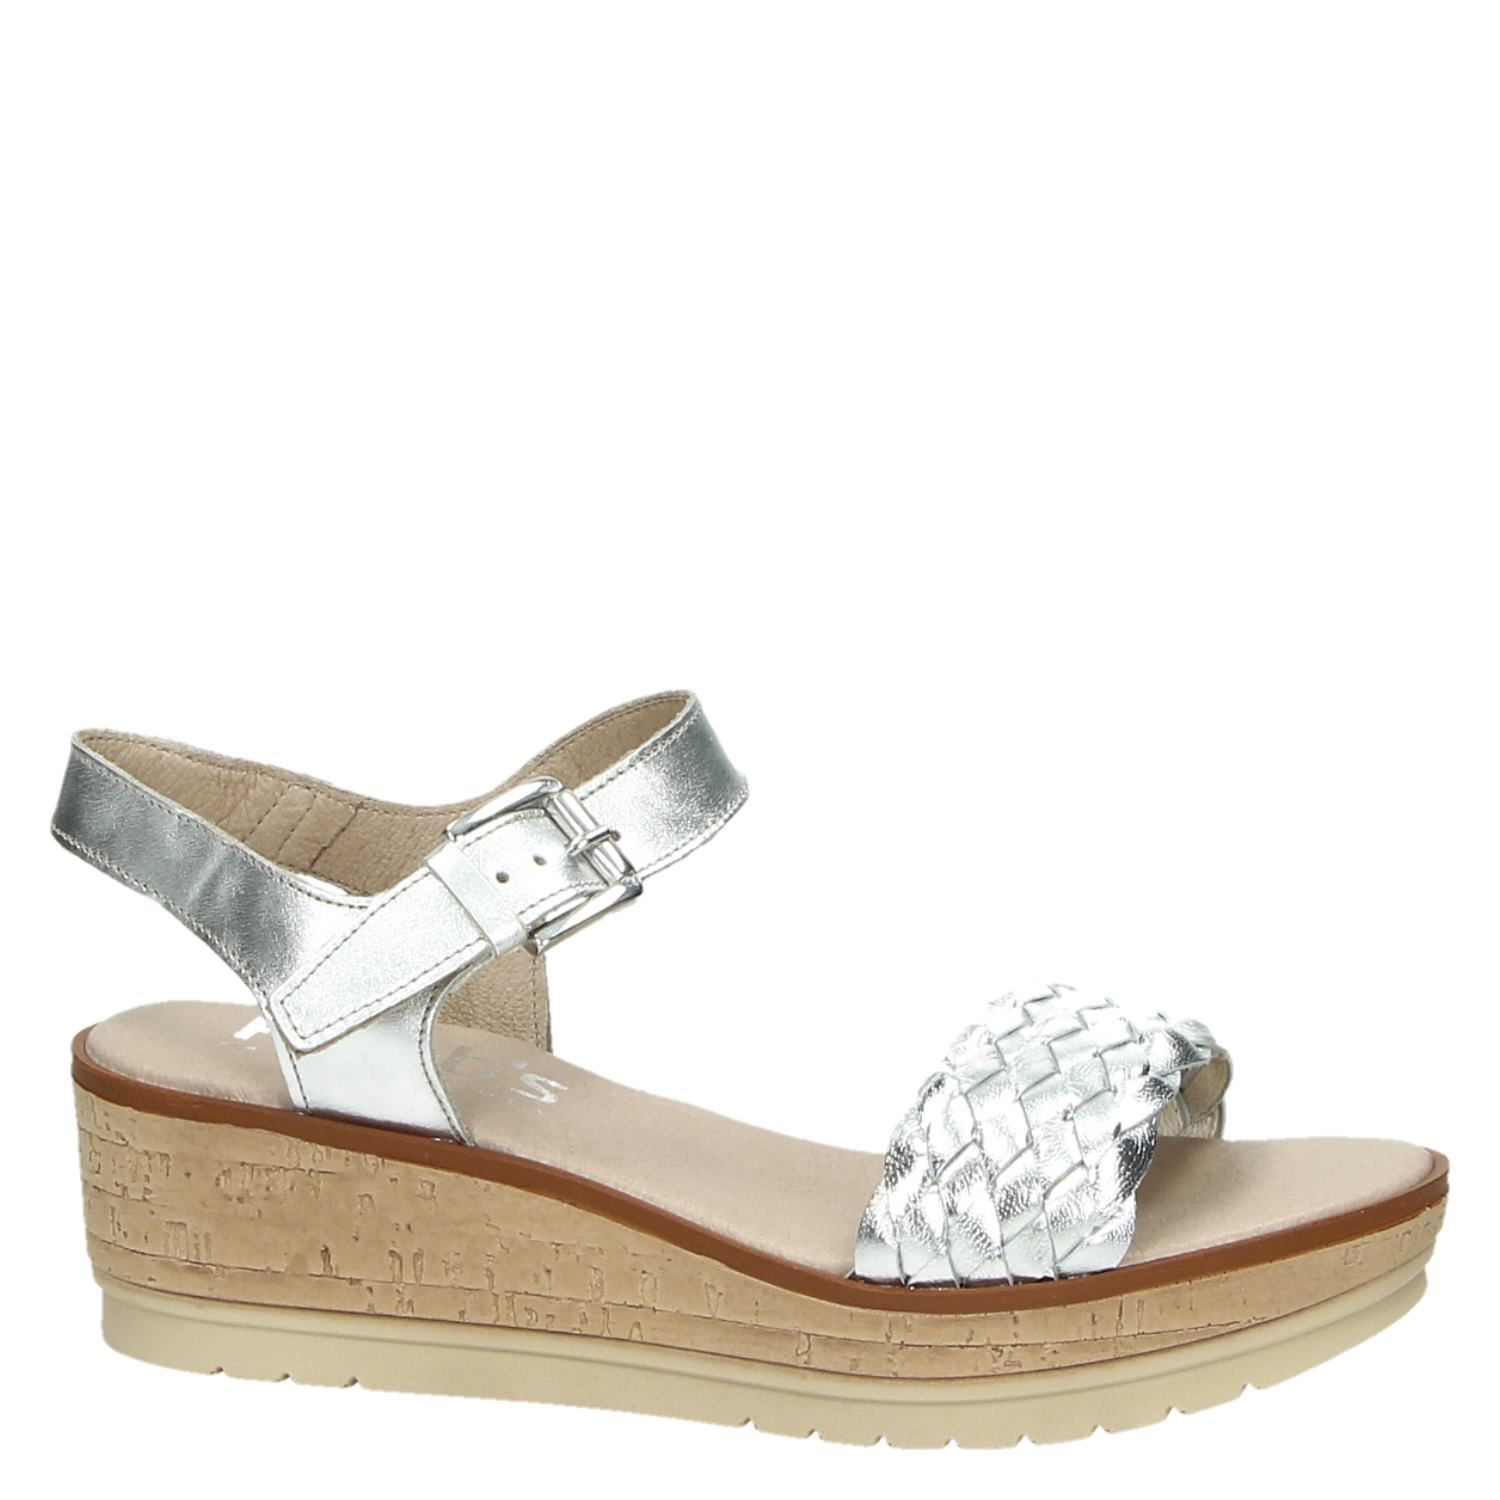 L'argent Wedge Eberly qtugcfOH